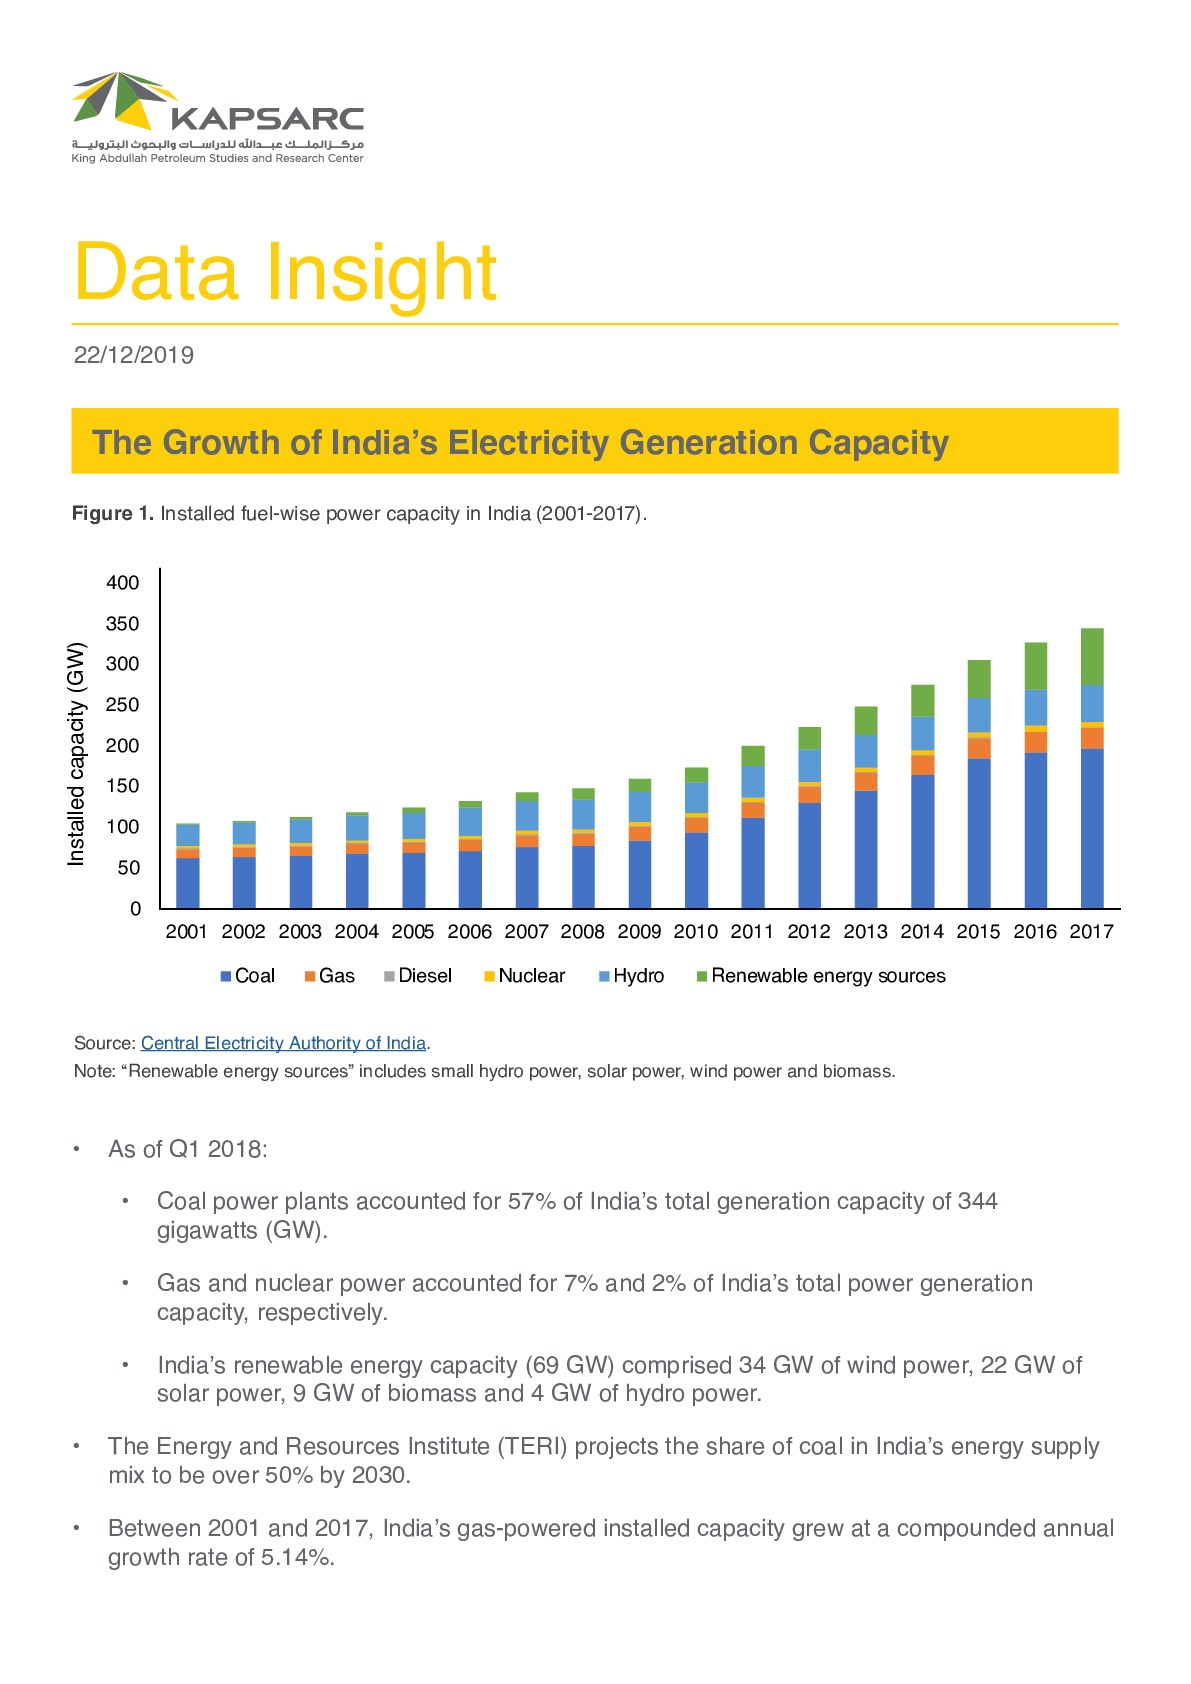 The Growth of India's Electricity Generation Capacity